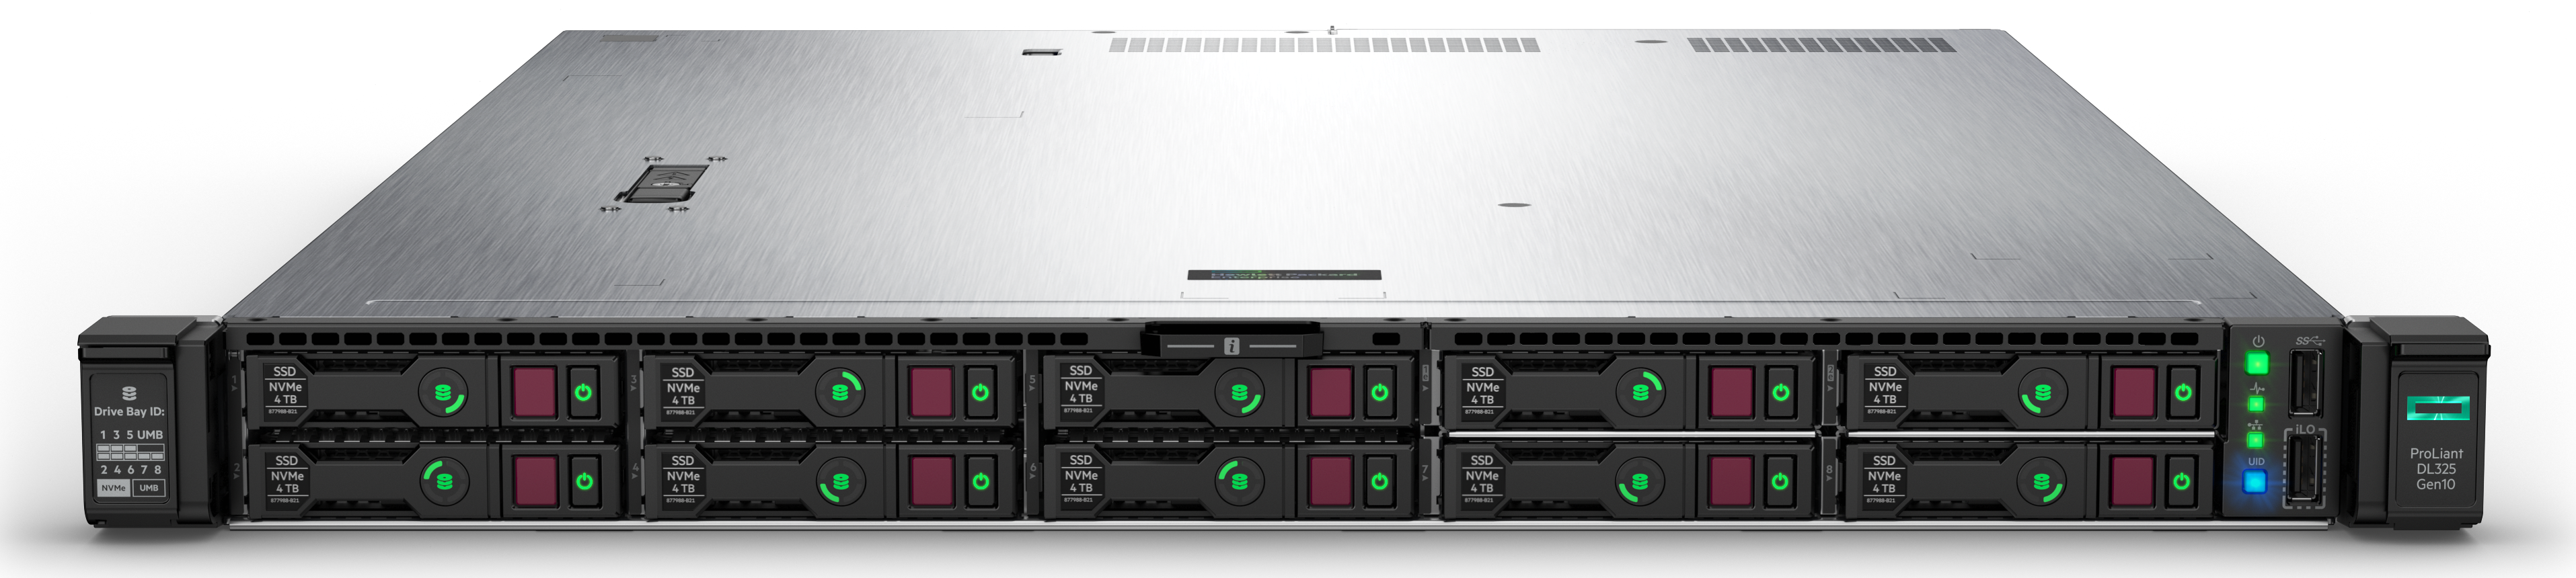 HPE ProLiant DL325 Gen10 10NVMe